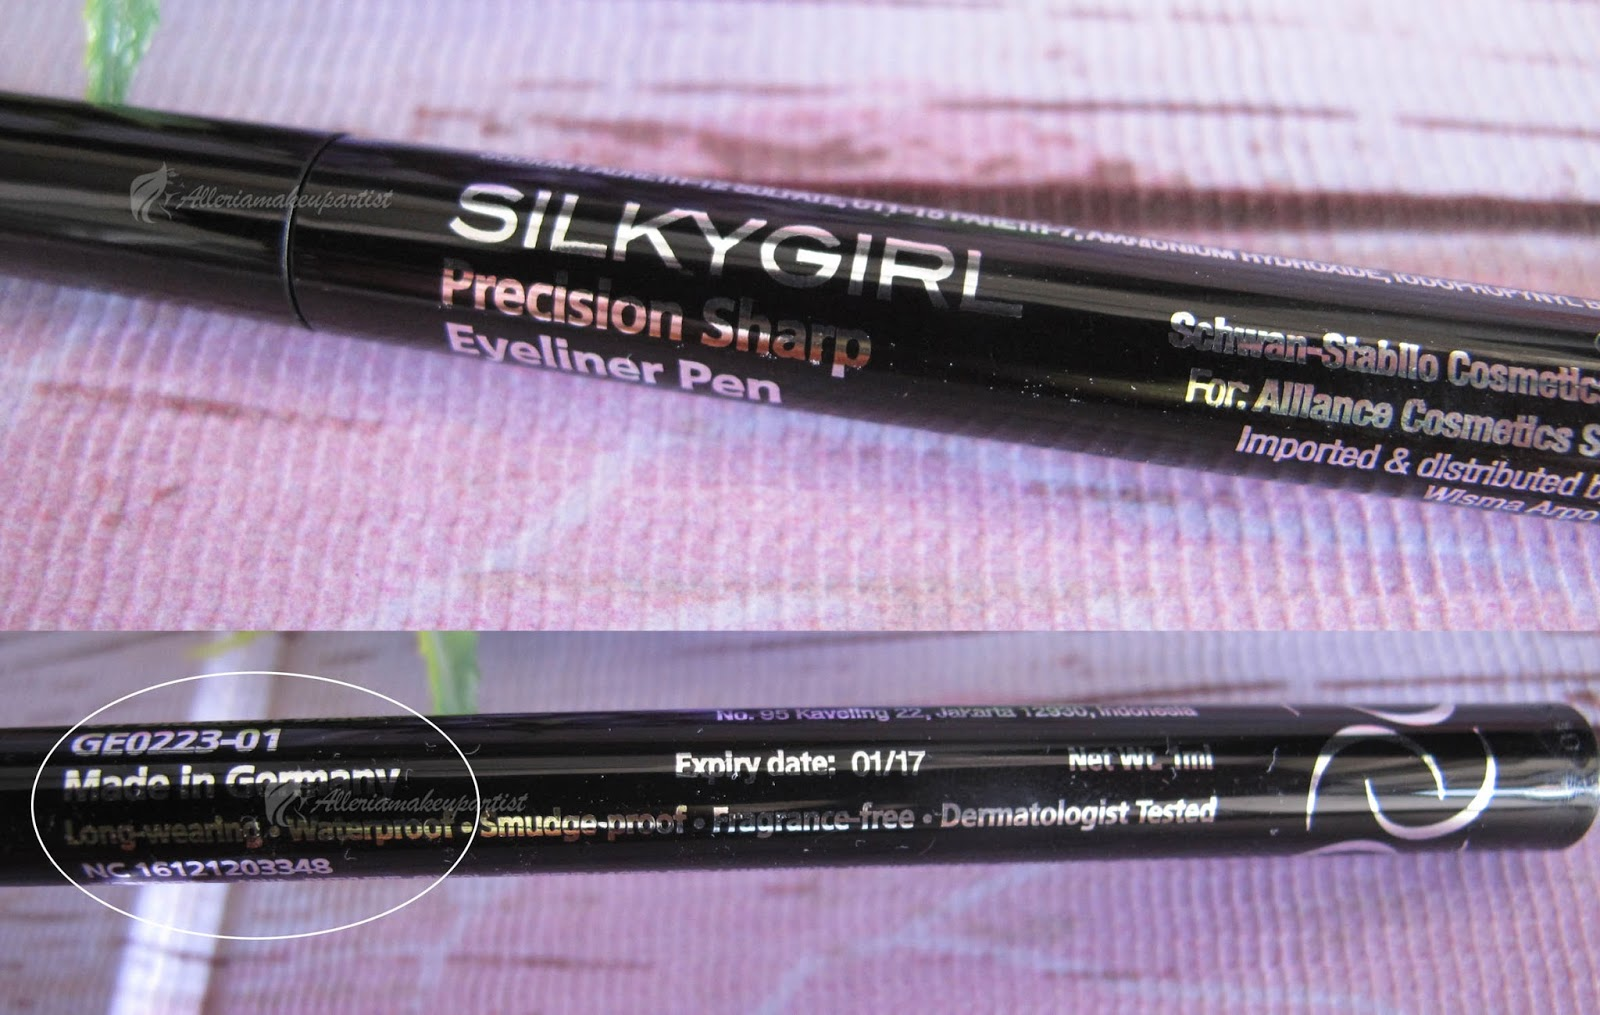 silky-girl-precision-sharp-eyeliner-pen-review.jpg